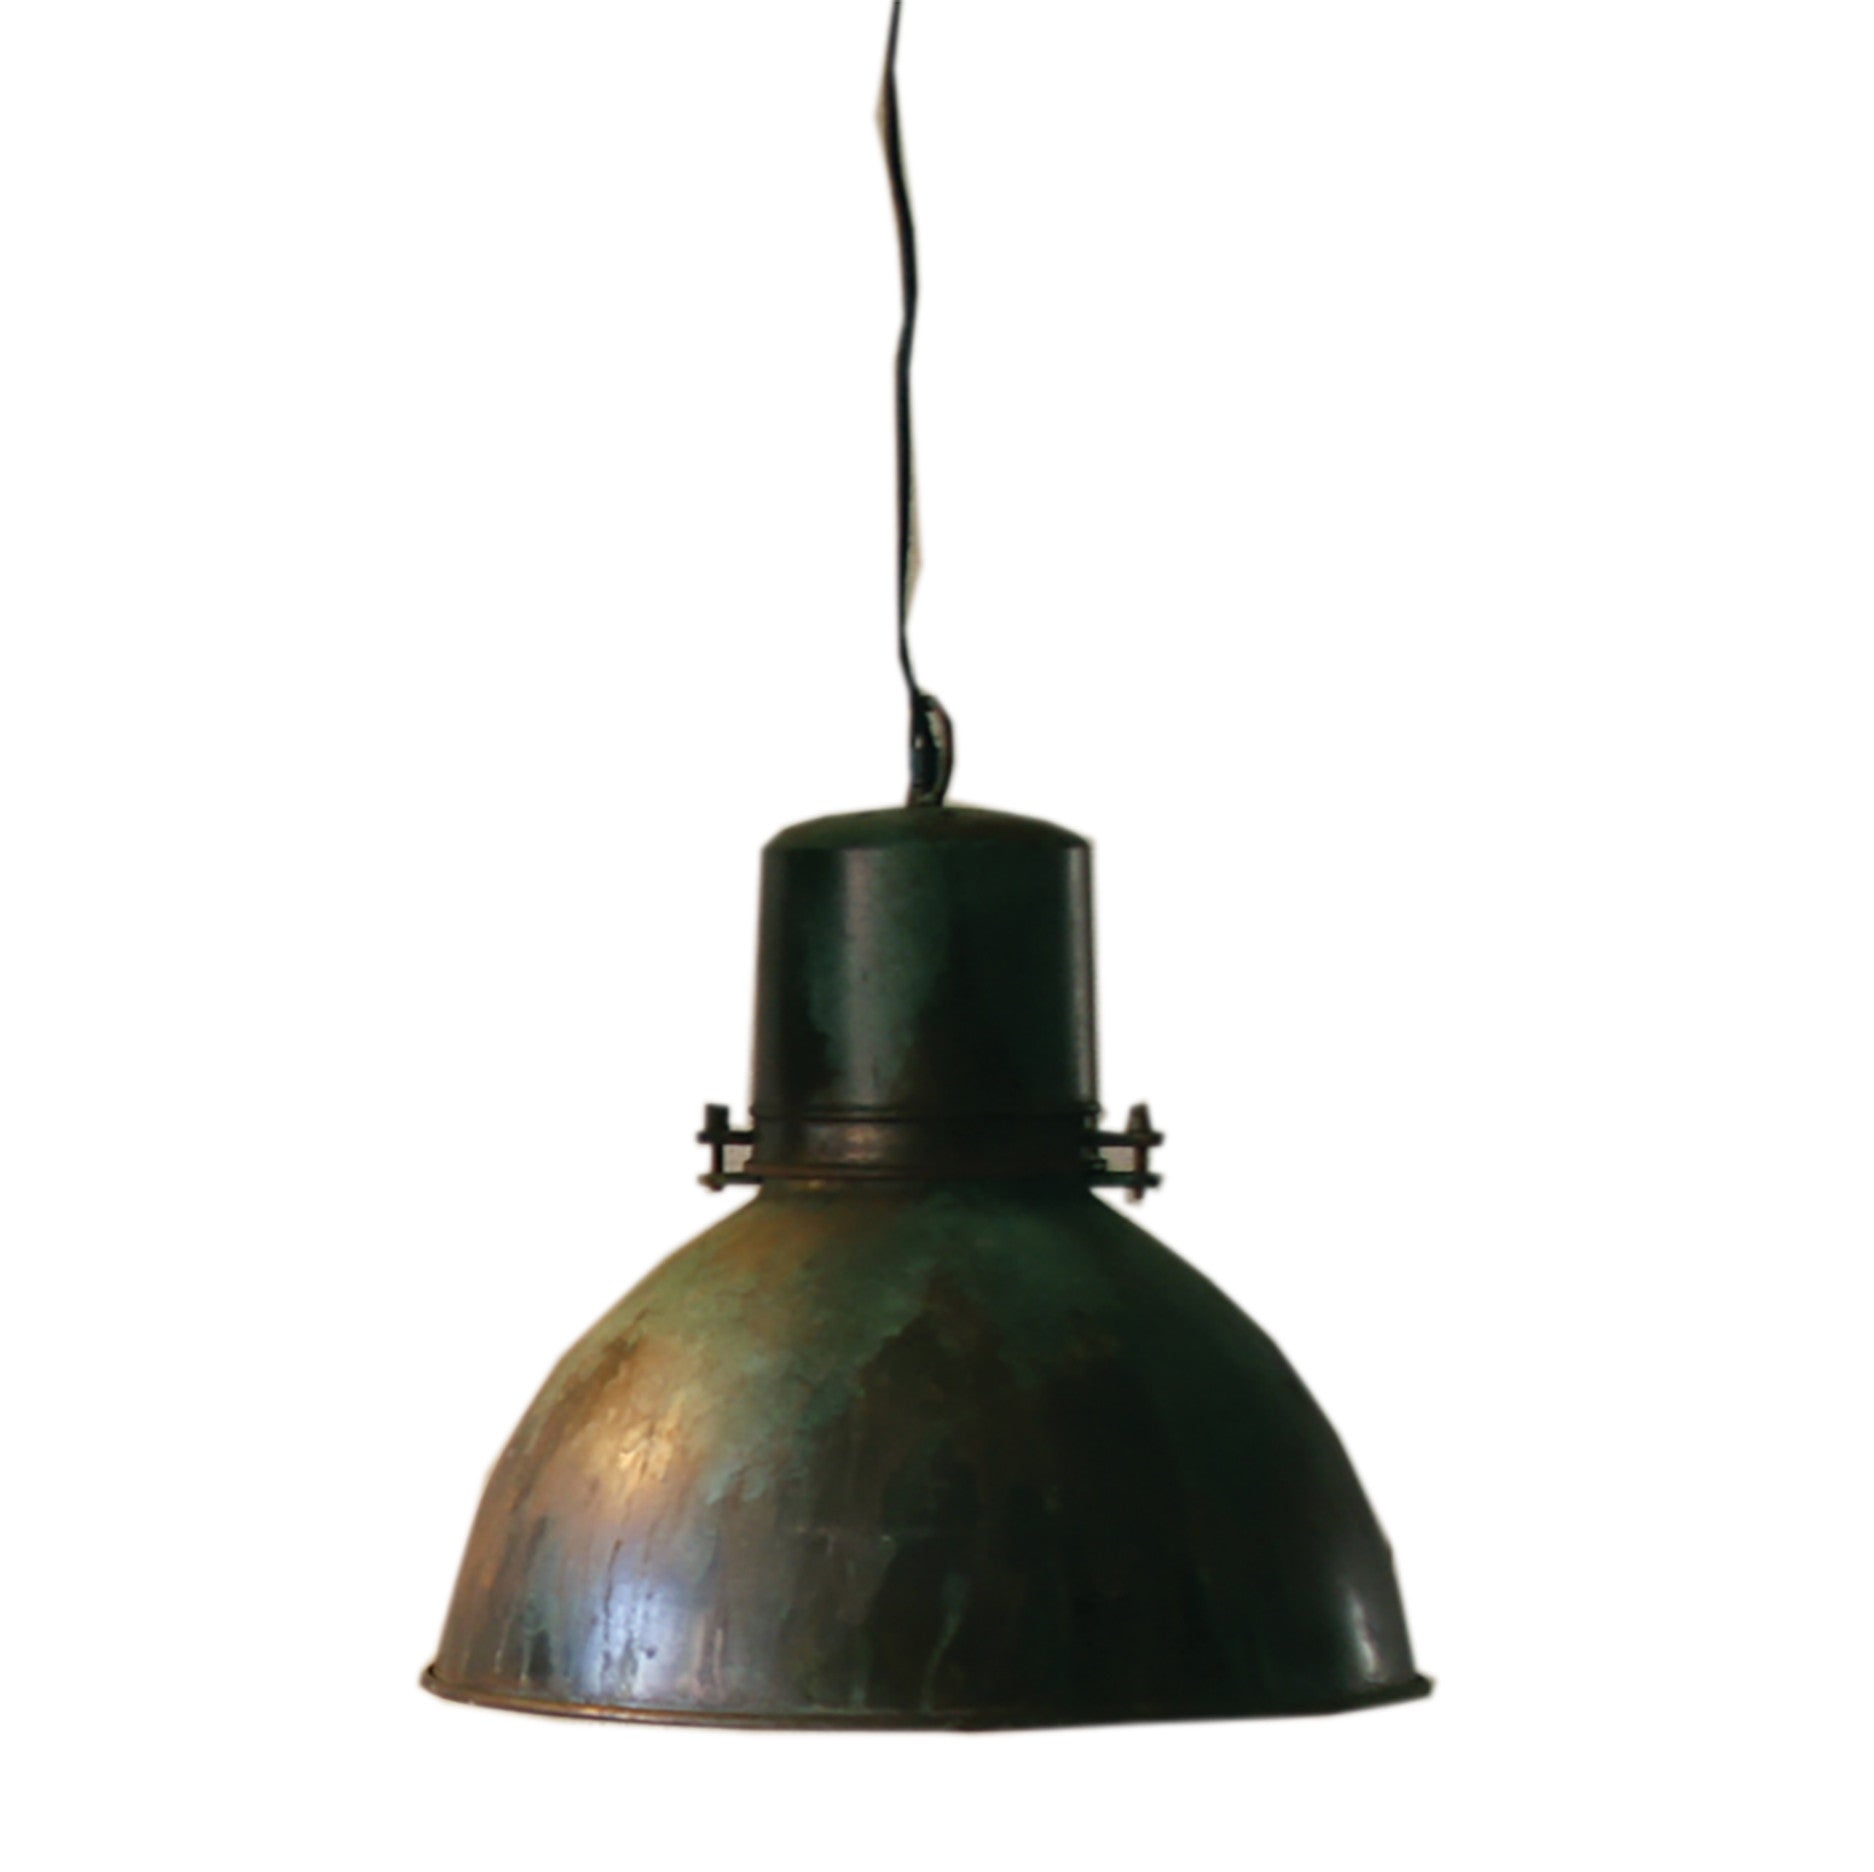 ga outdoor warehouse pendant inch series millennium cord lighting to hung htm zoom productdetail galvanized r hover